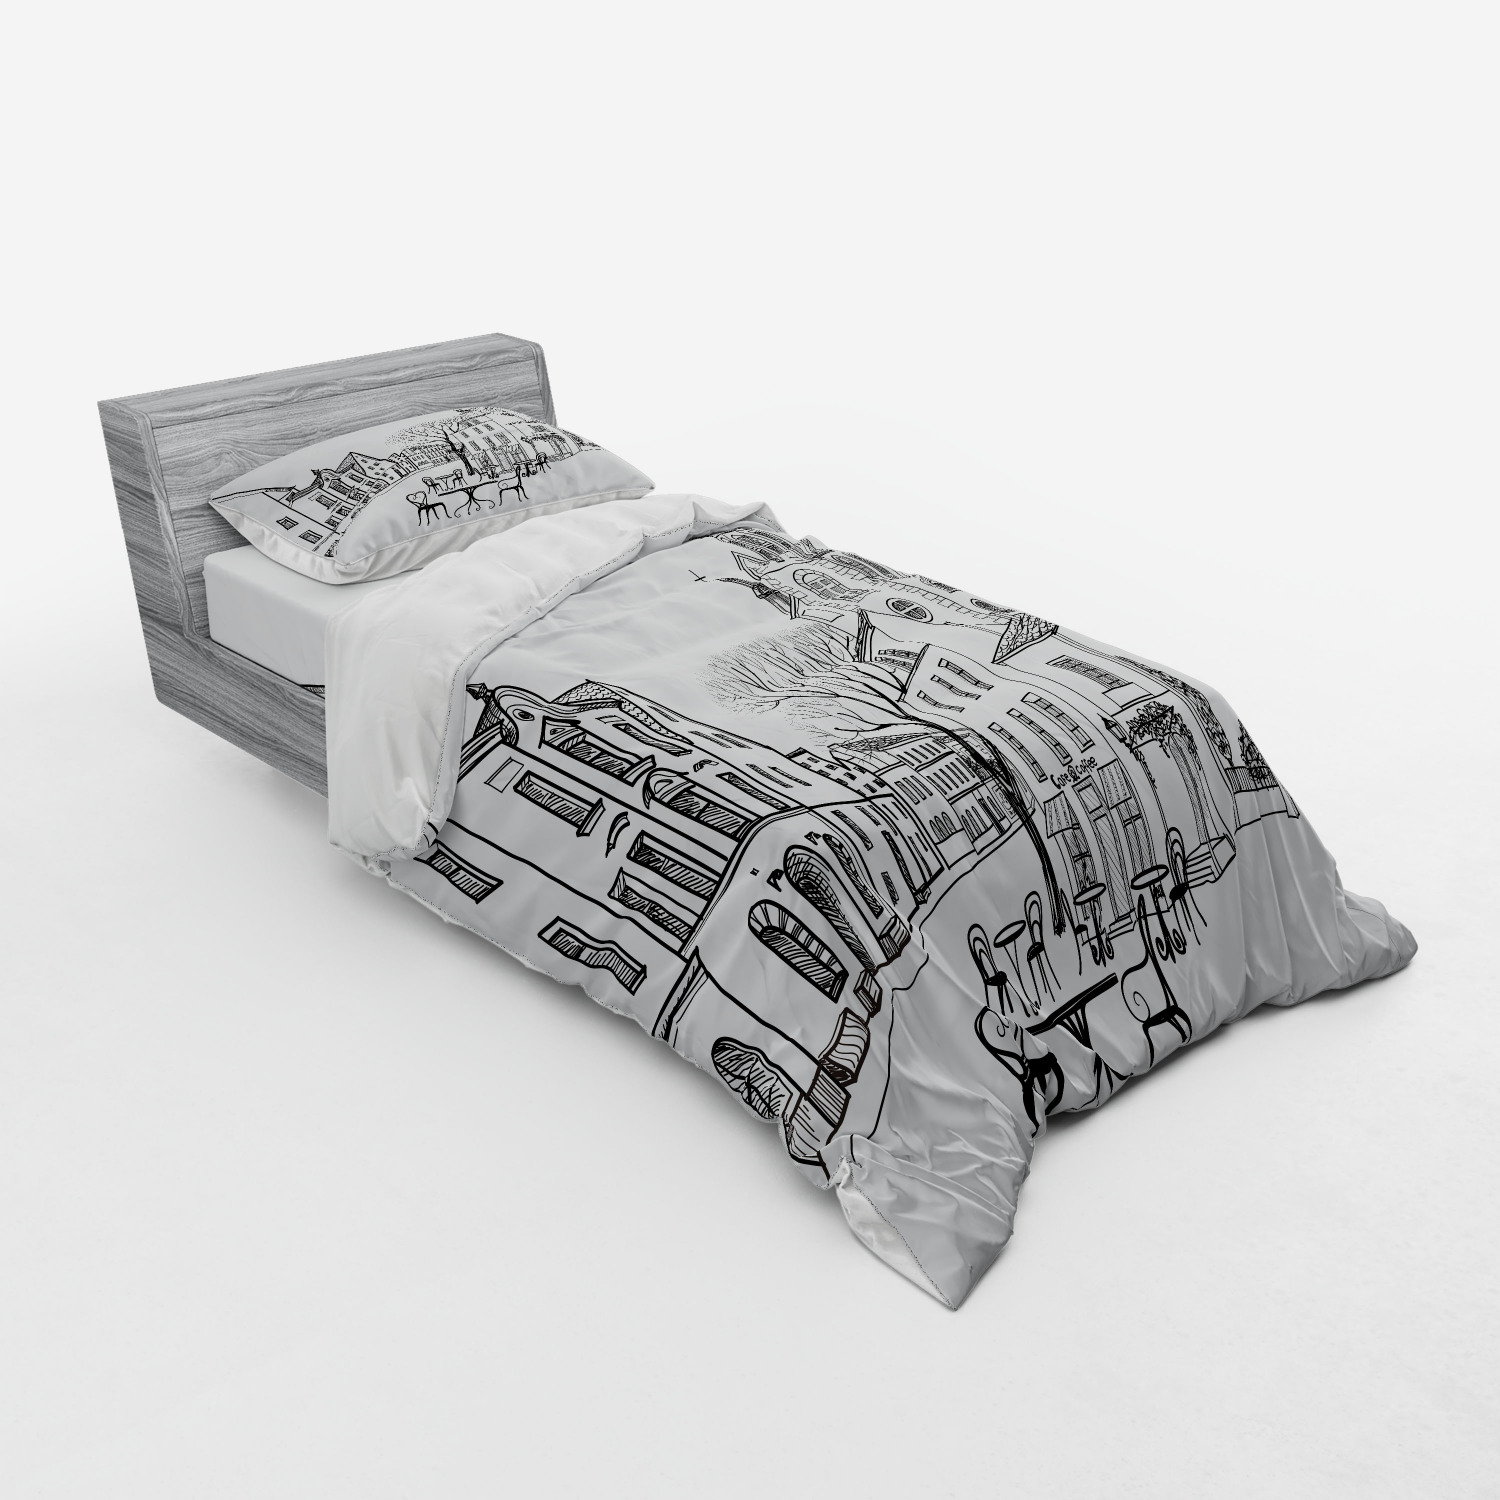 thumbnail 153 - Ambesonne Black White Art Bedding Set Duvet Cover Sham Fitted Sheet in 3 Sizes